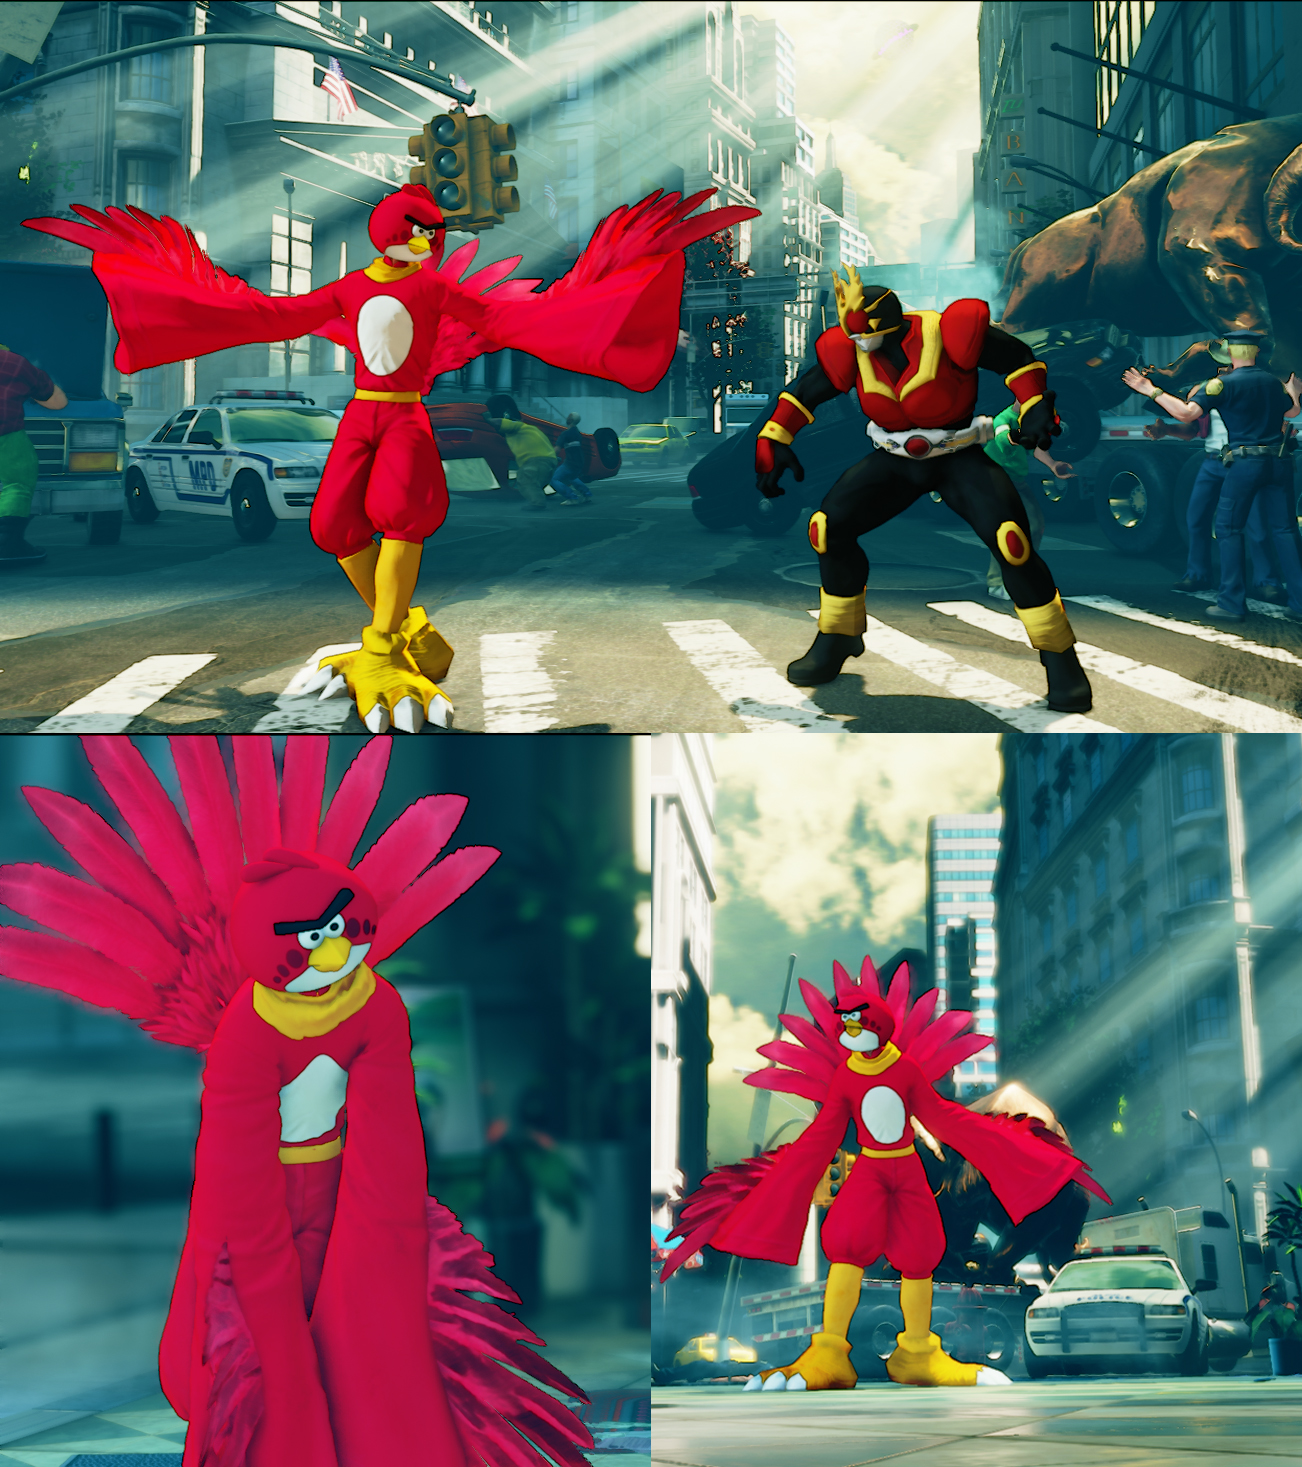 sfv__f_a_n_g_as_angry_bird_by_monkeygigabuster-dagp2gq.jpg